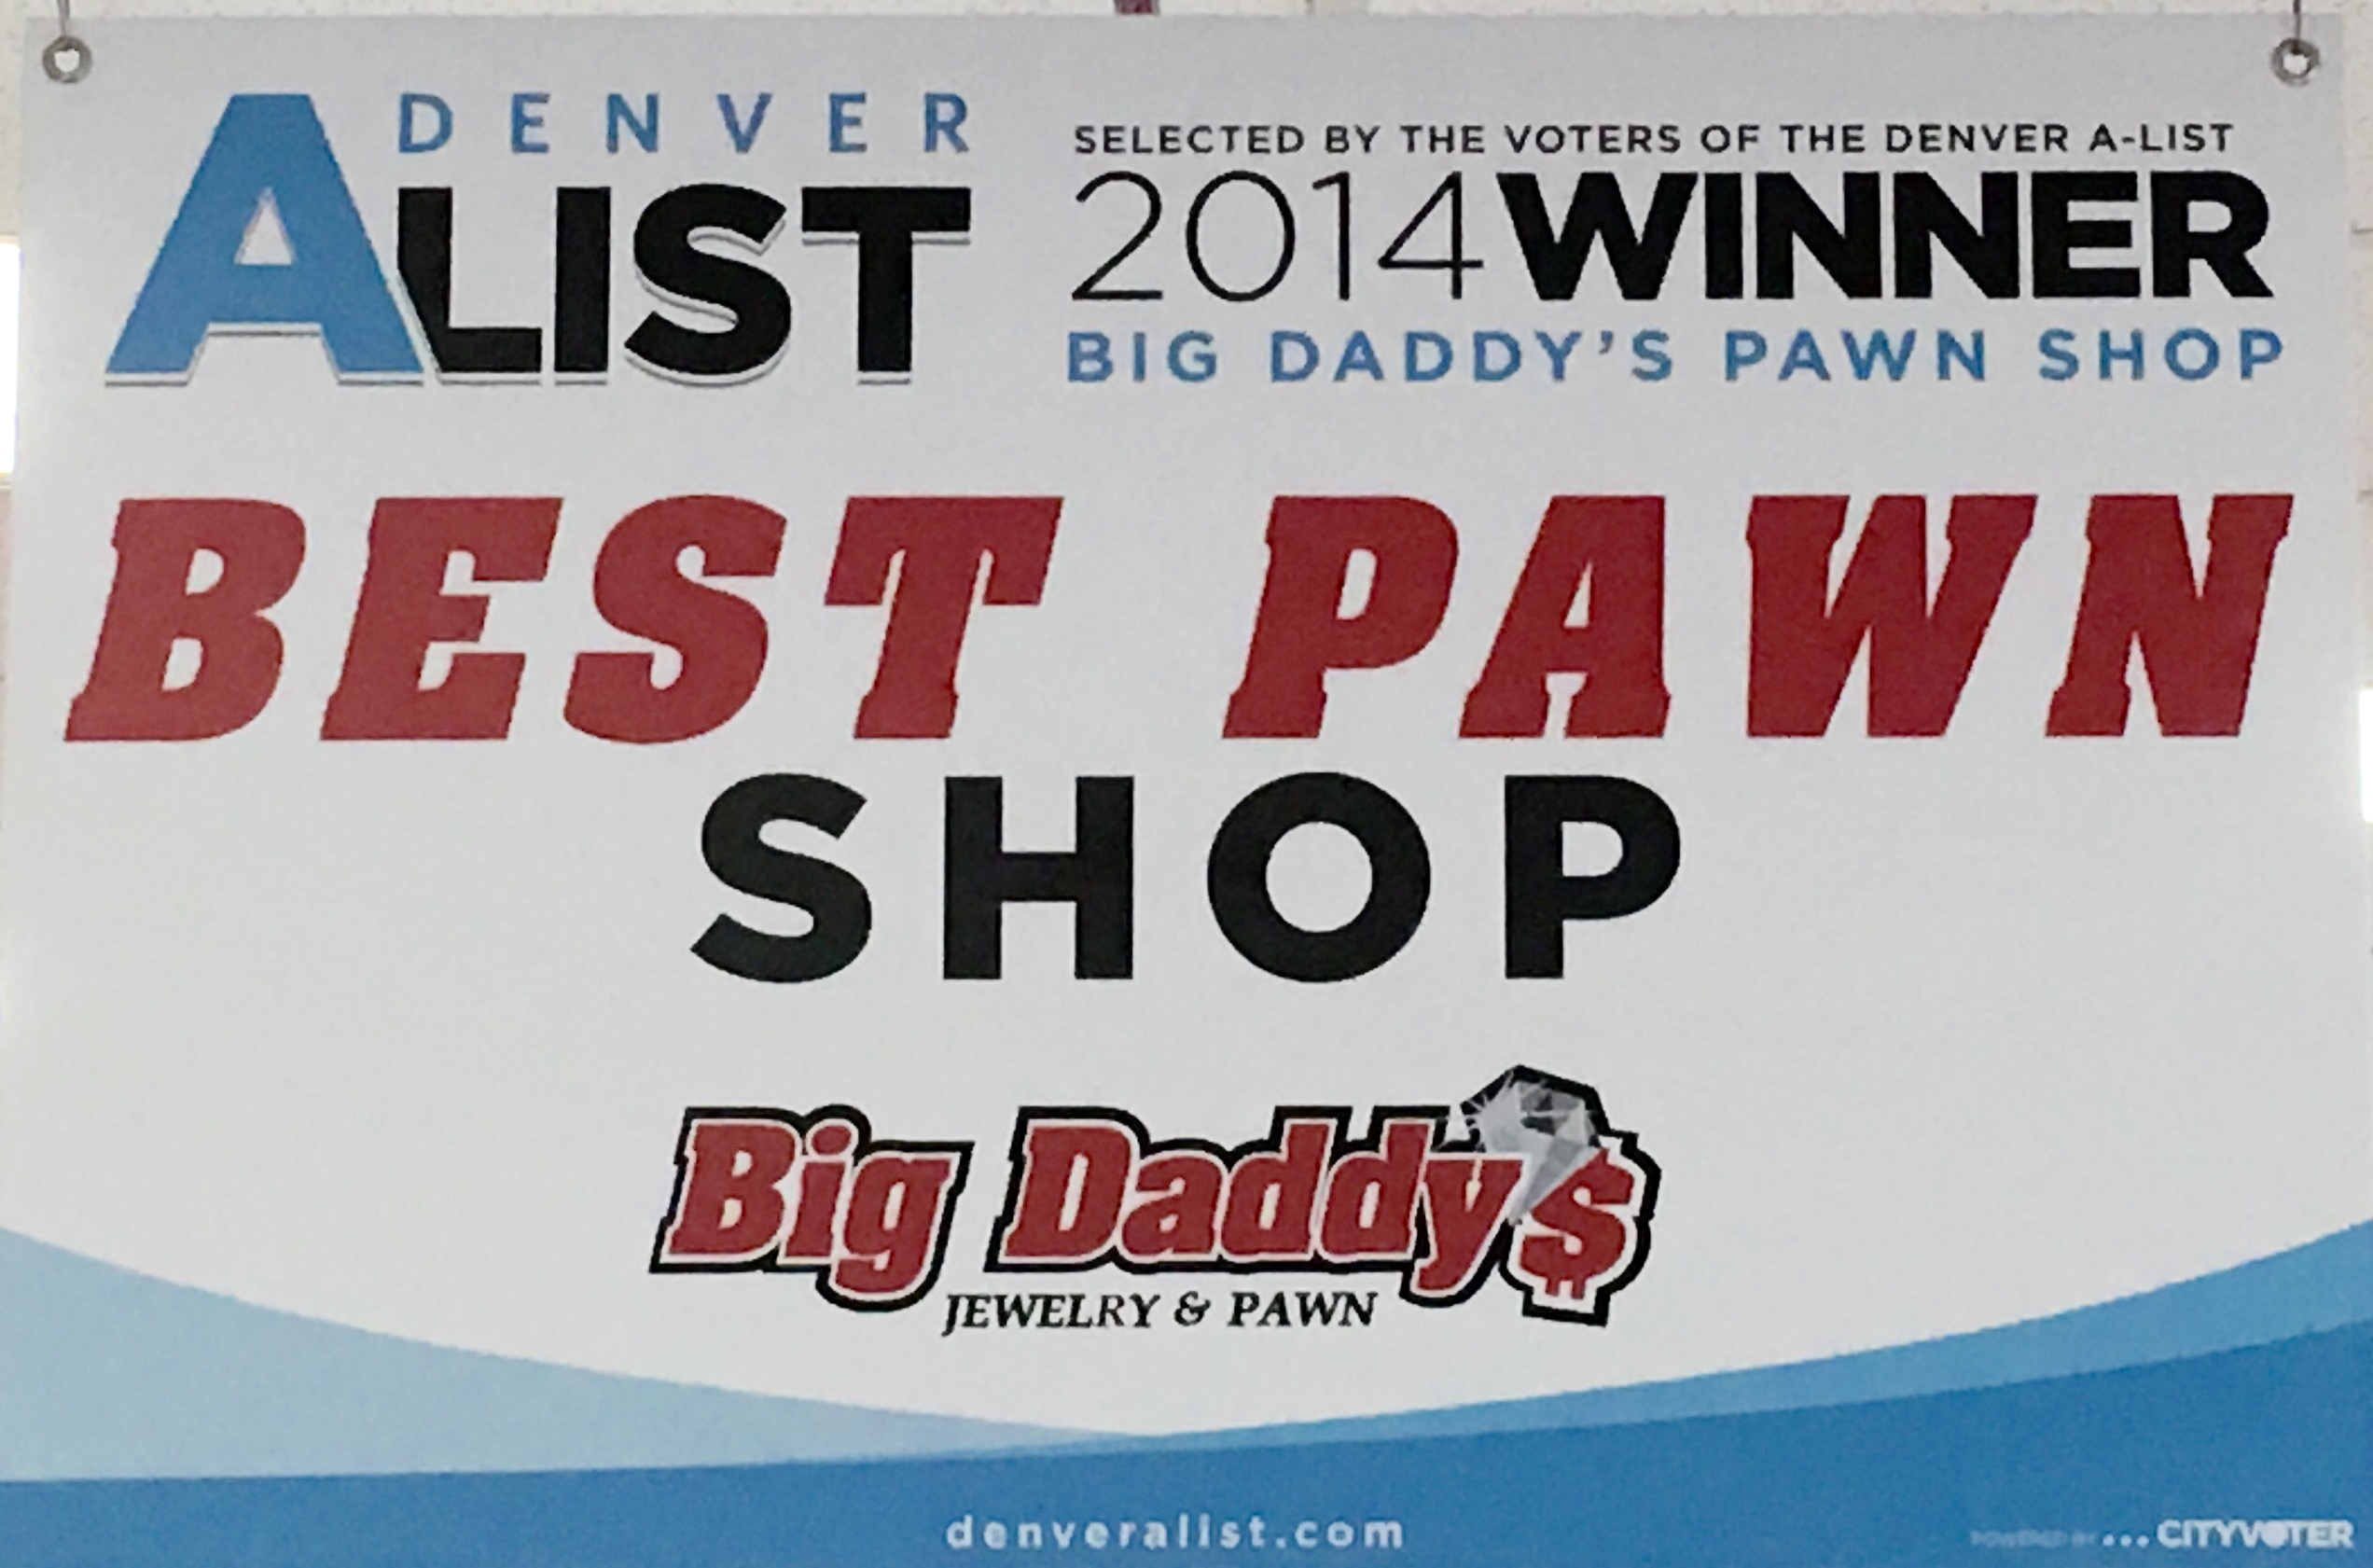 Big Daddy's Jewelry and Pawn 2014 winners of the Denver A-List